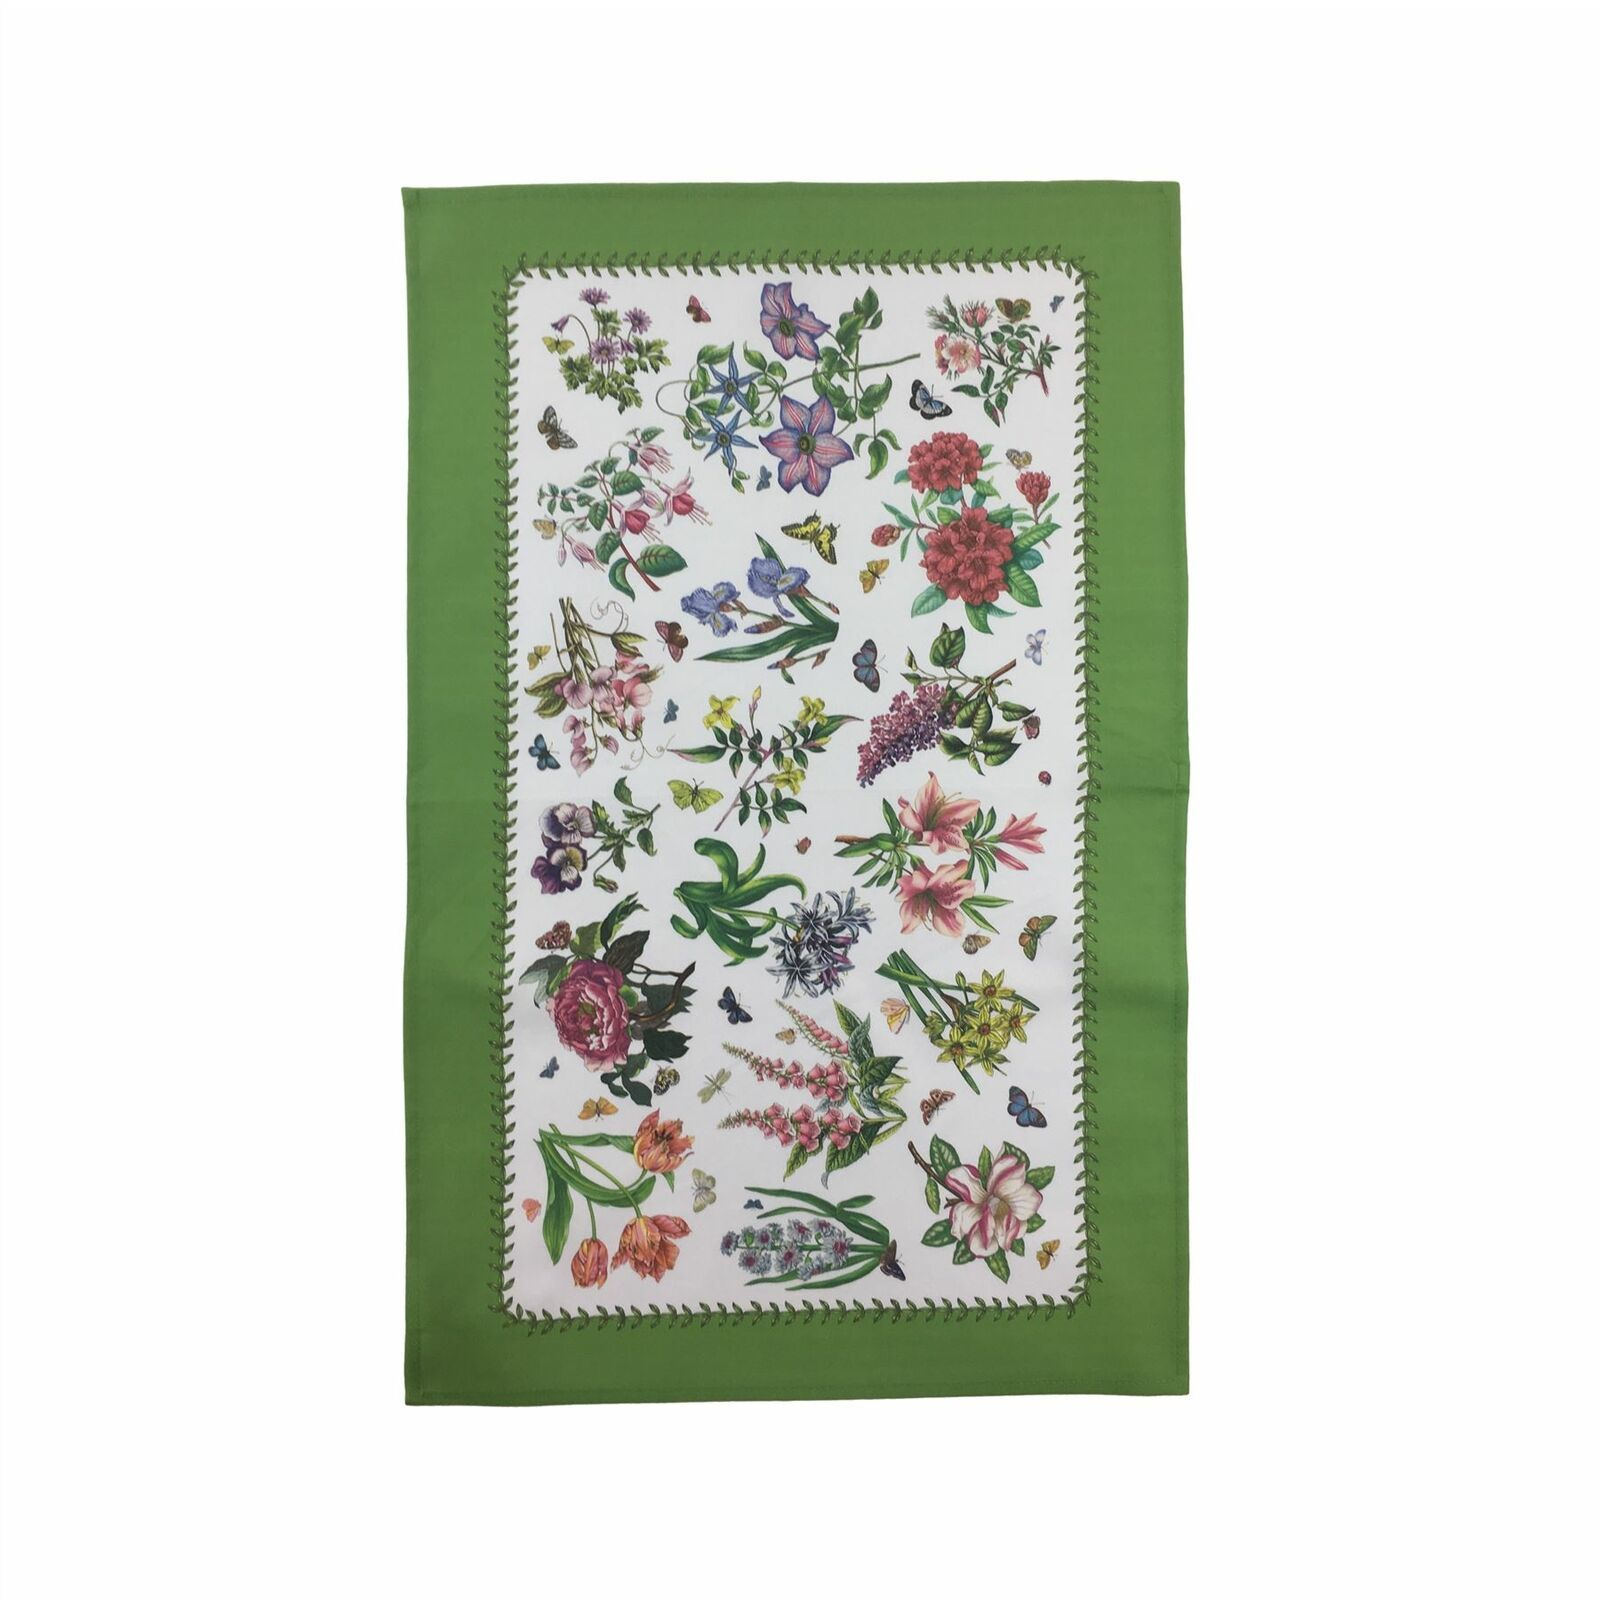 FLORAL FLOWERS BUTTERFLIES WHITE GREEN BORDERED 100% COTTON TEA TOWEL 45CM X74CM